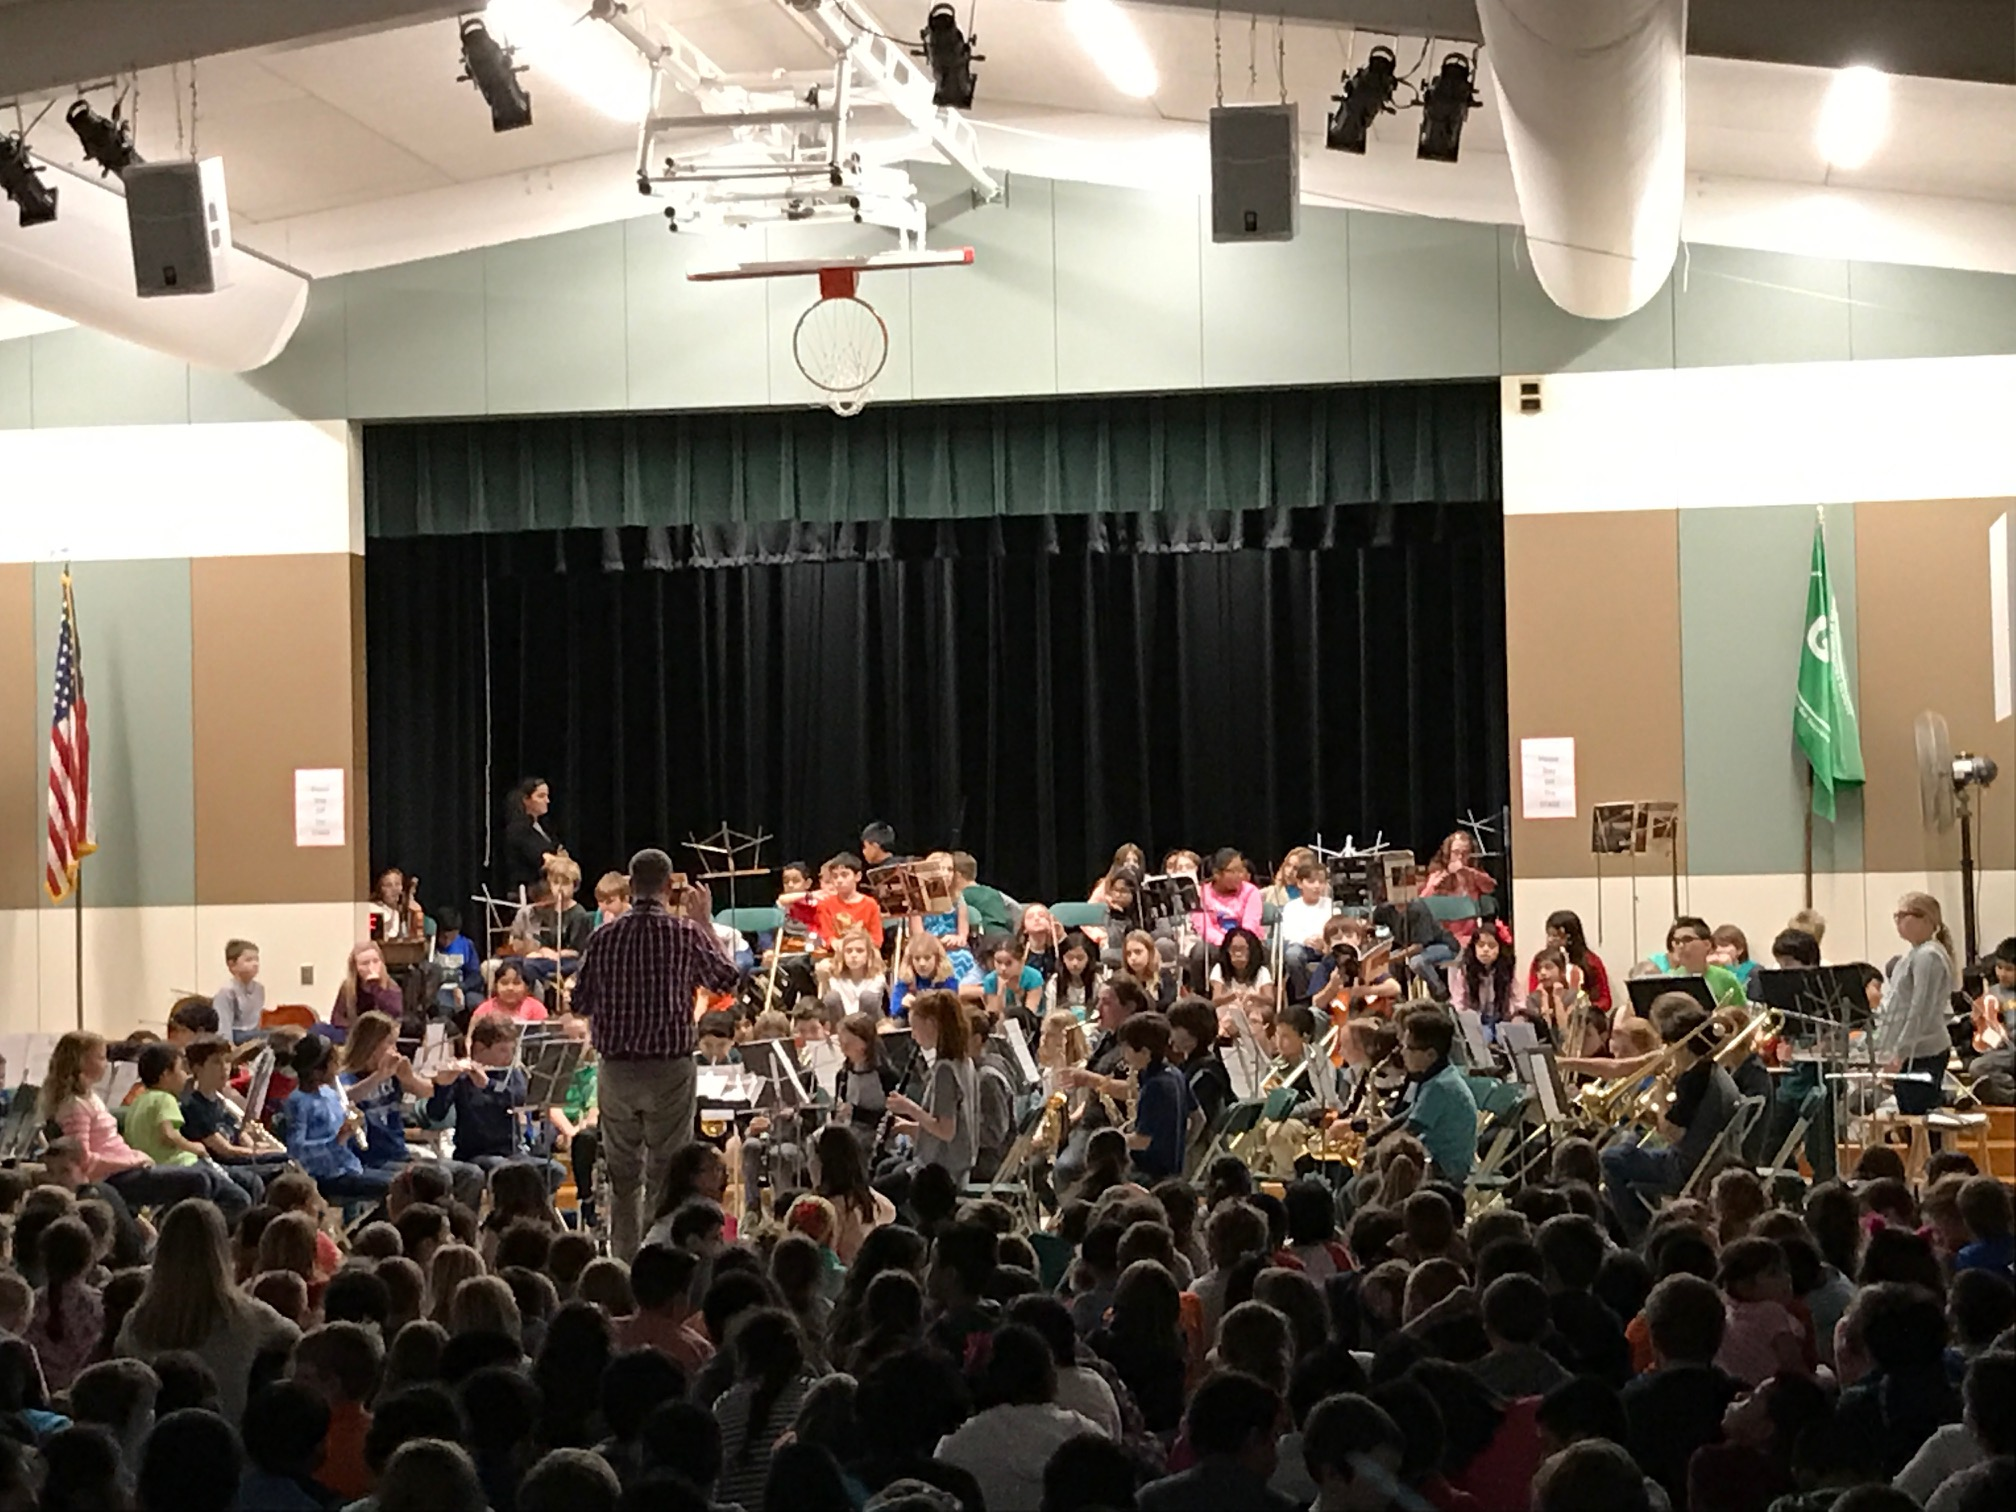 elementary school band performing for an audience